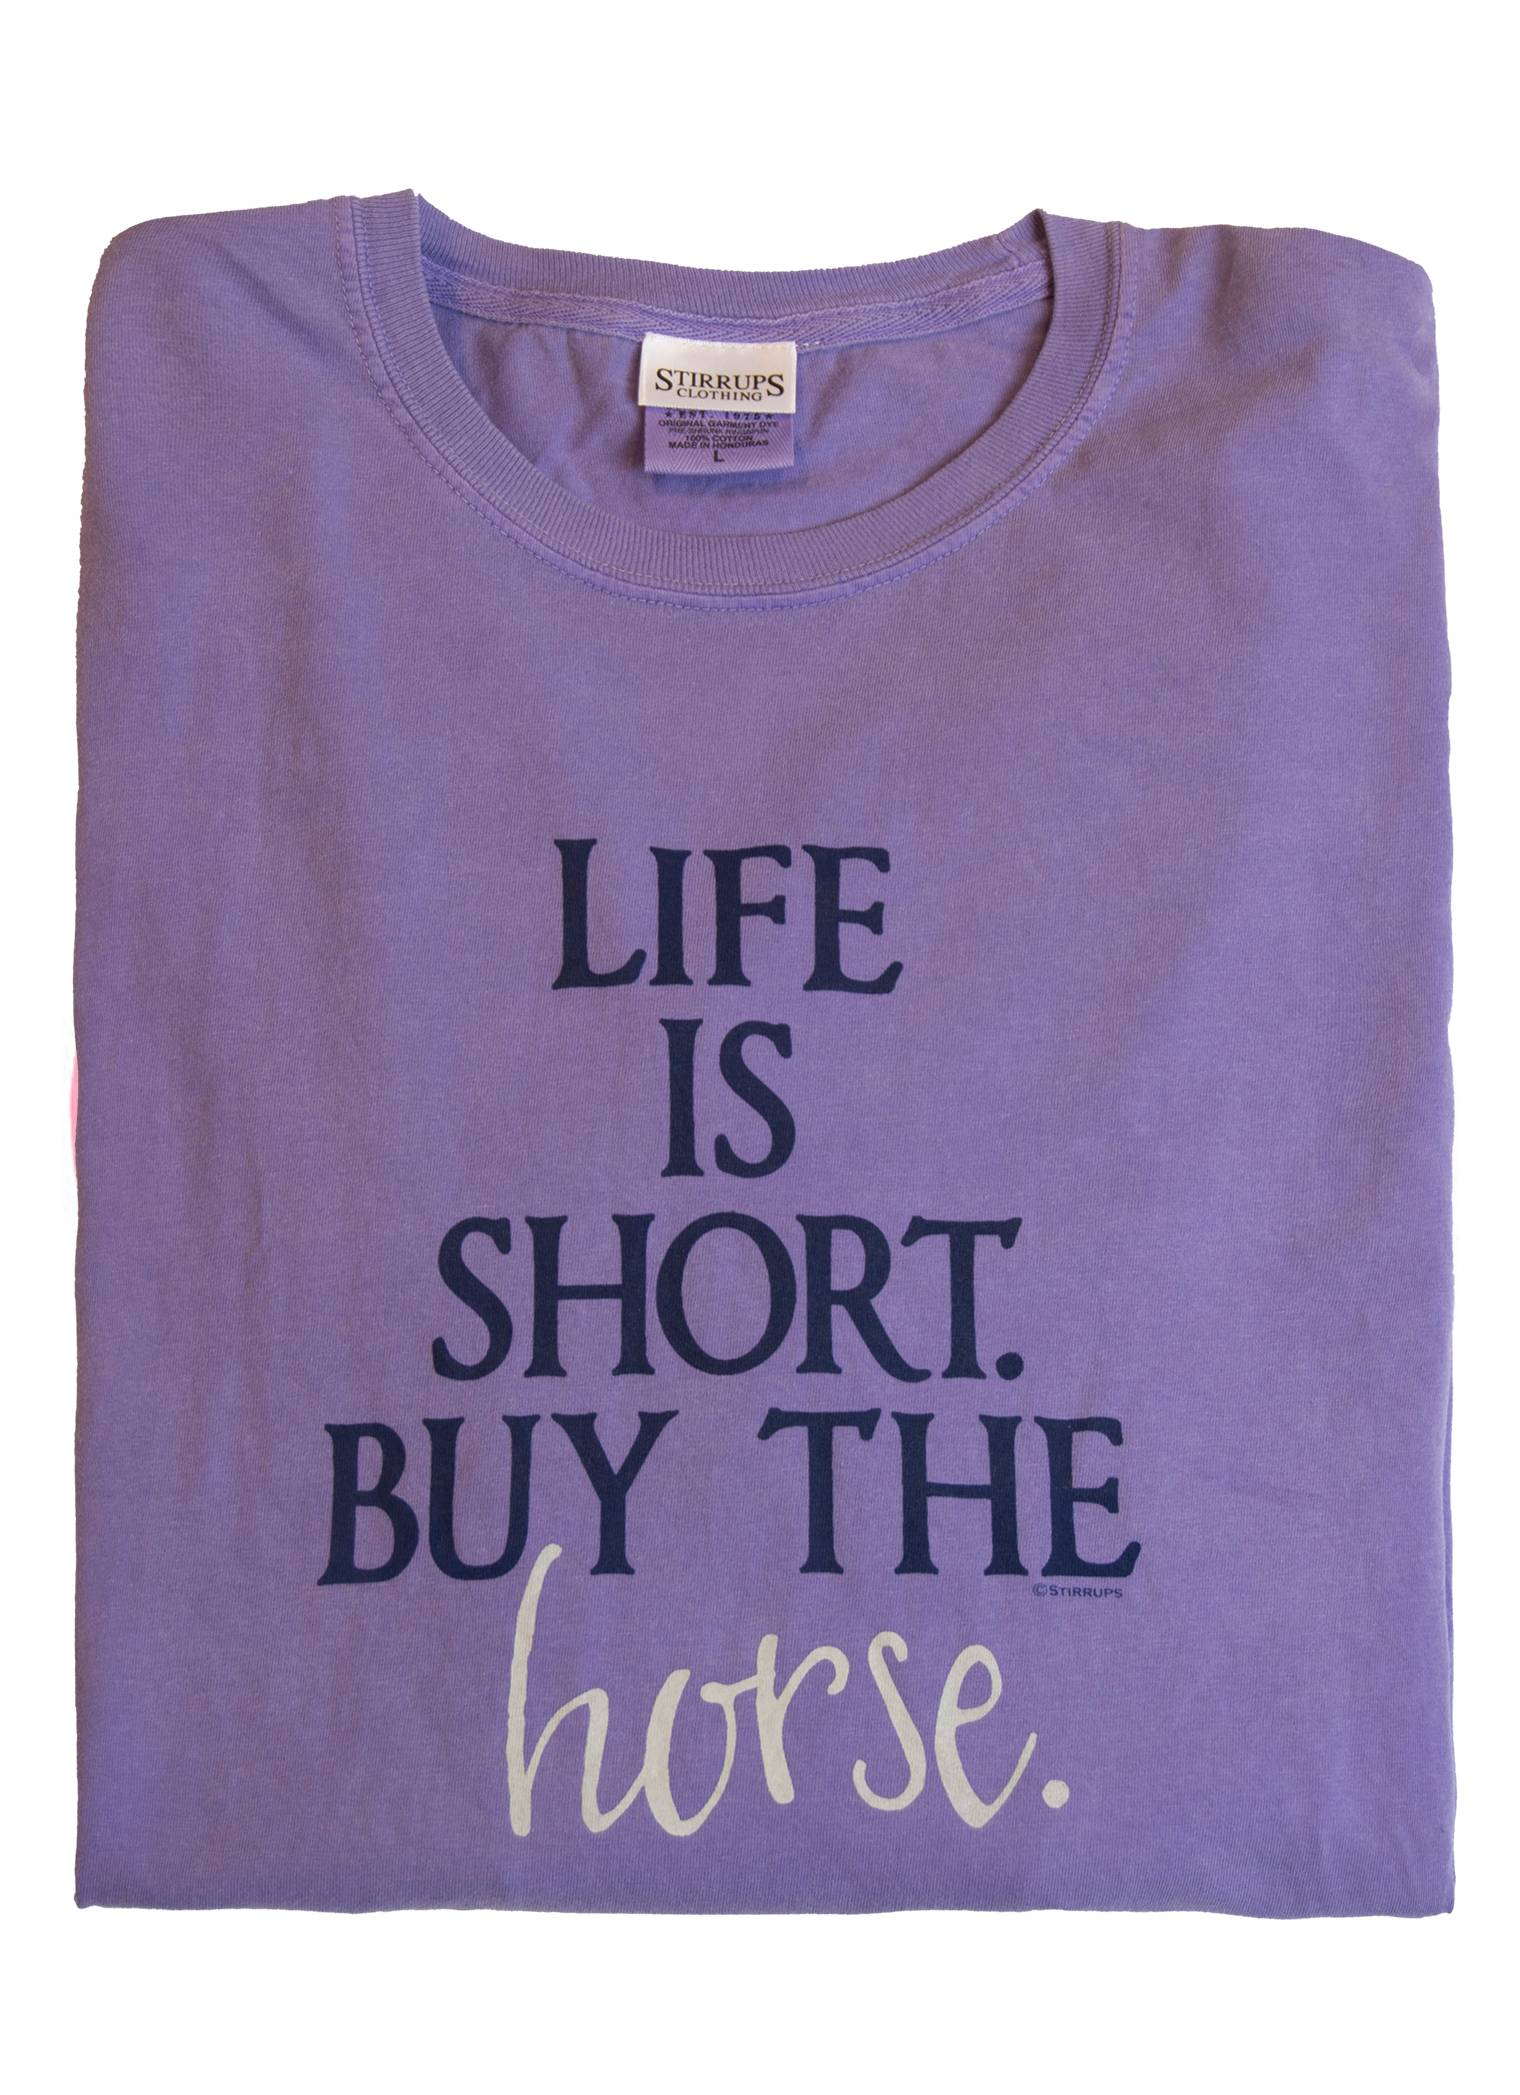 Stirrups Life Is Short Buy The Horse Long Sleeve Comfort Tee - Ladies